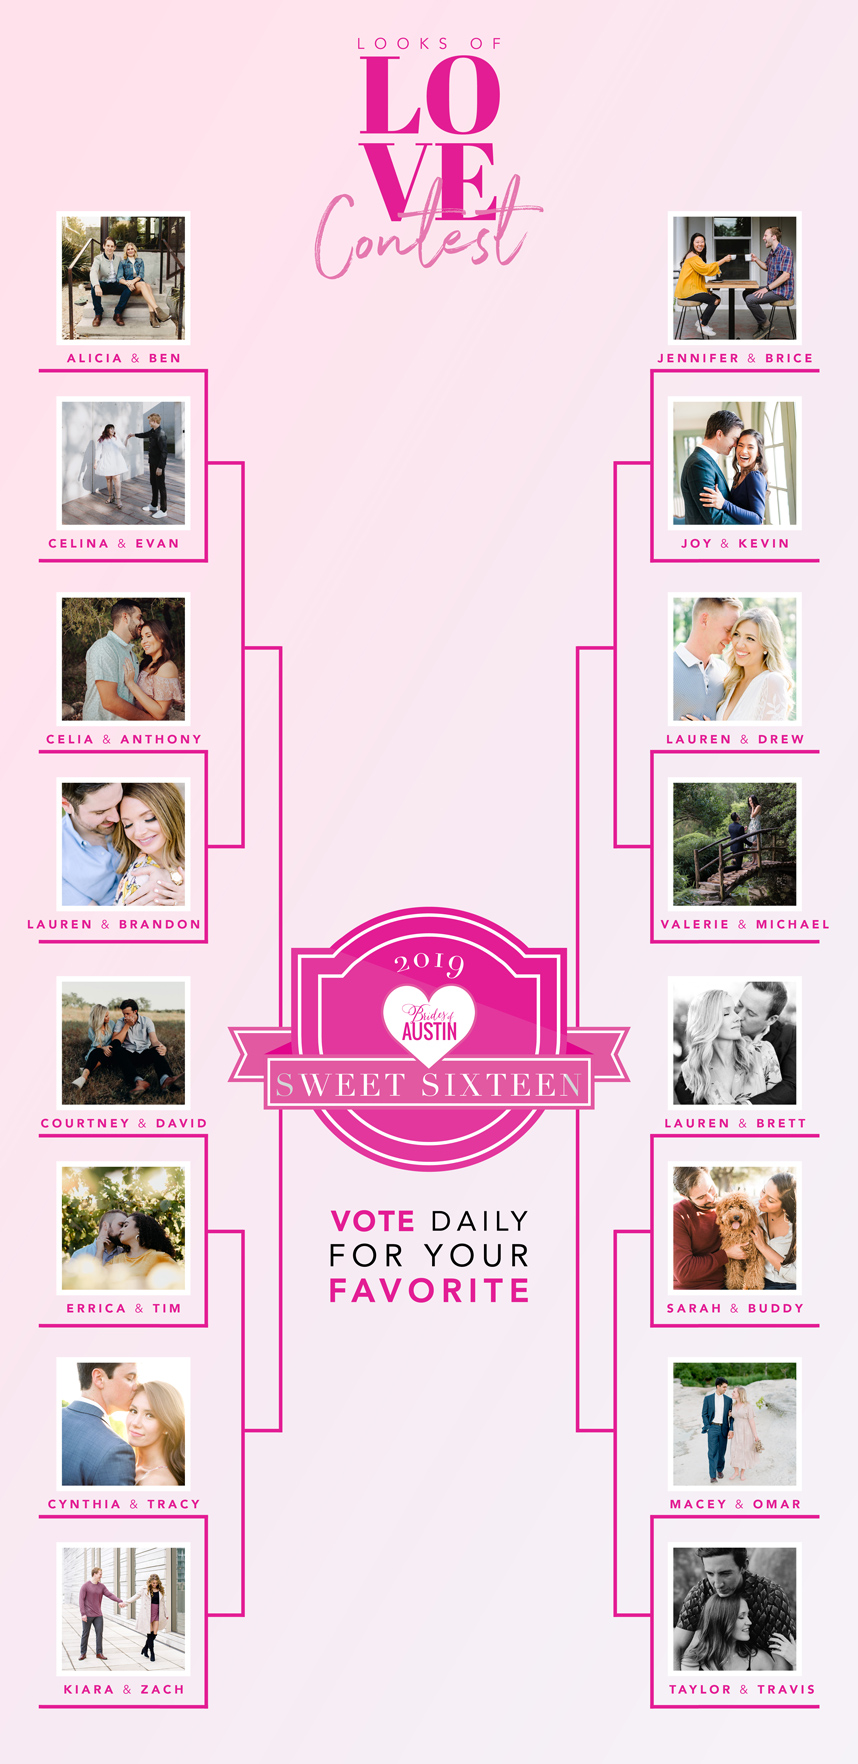 Looks of Love Contest 2019 – Cast your vote for our Sweet 16 Finalists!